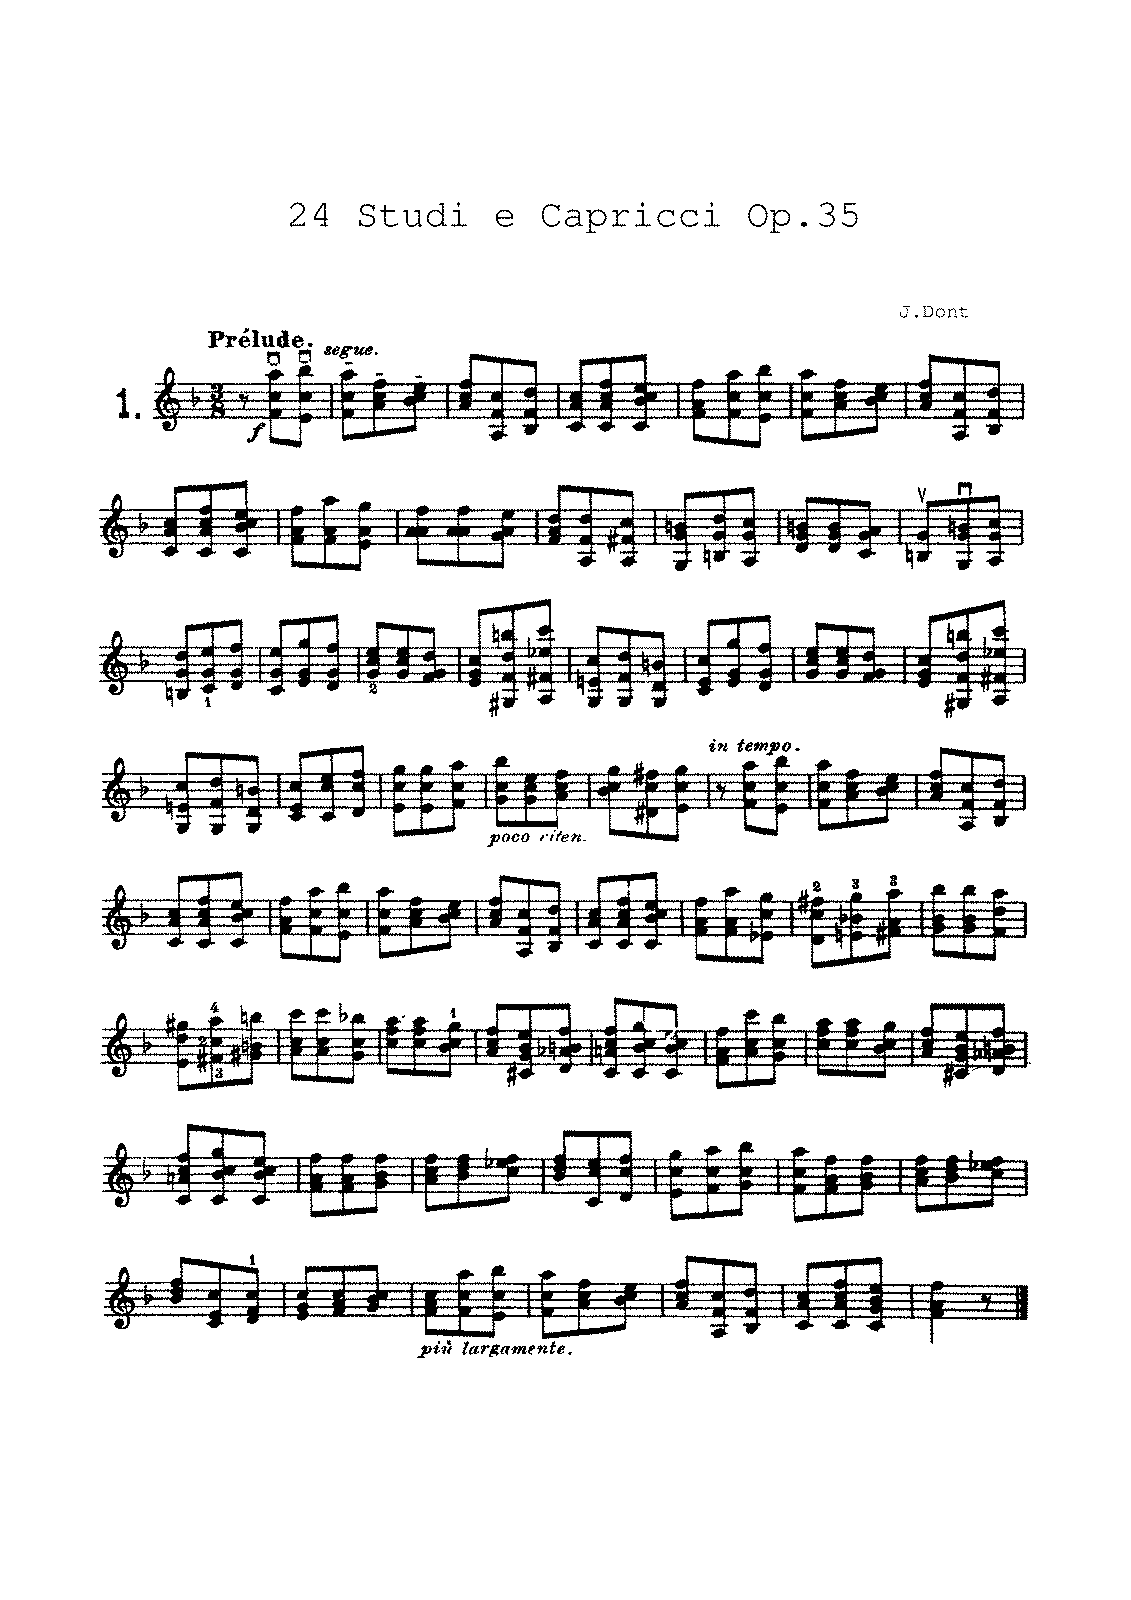 Dont - 01 - 24 Etudes and Caprices Op.35.pdf